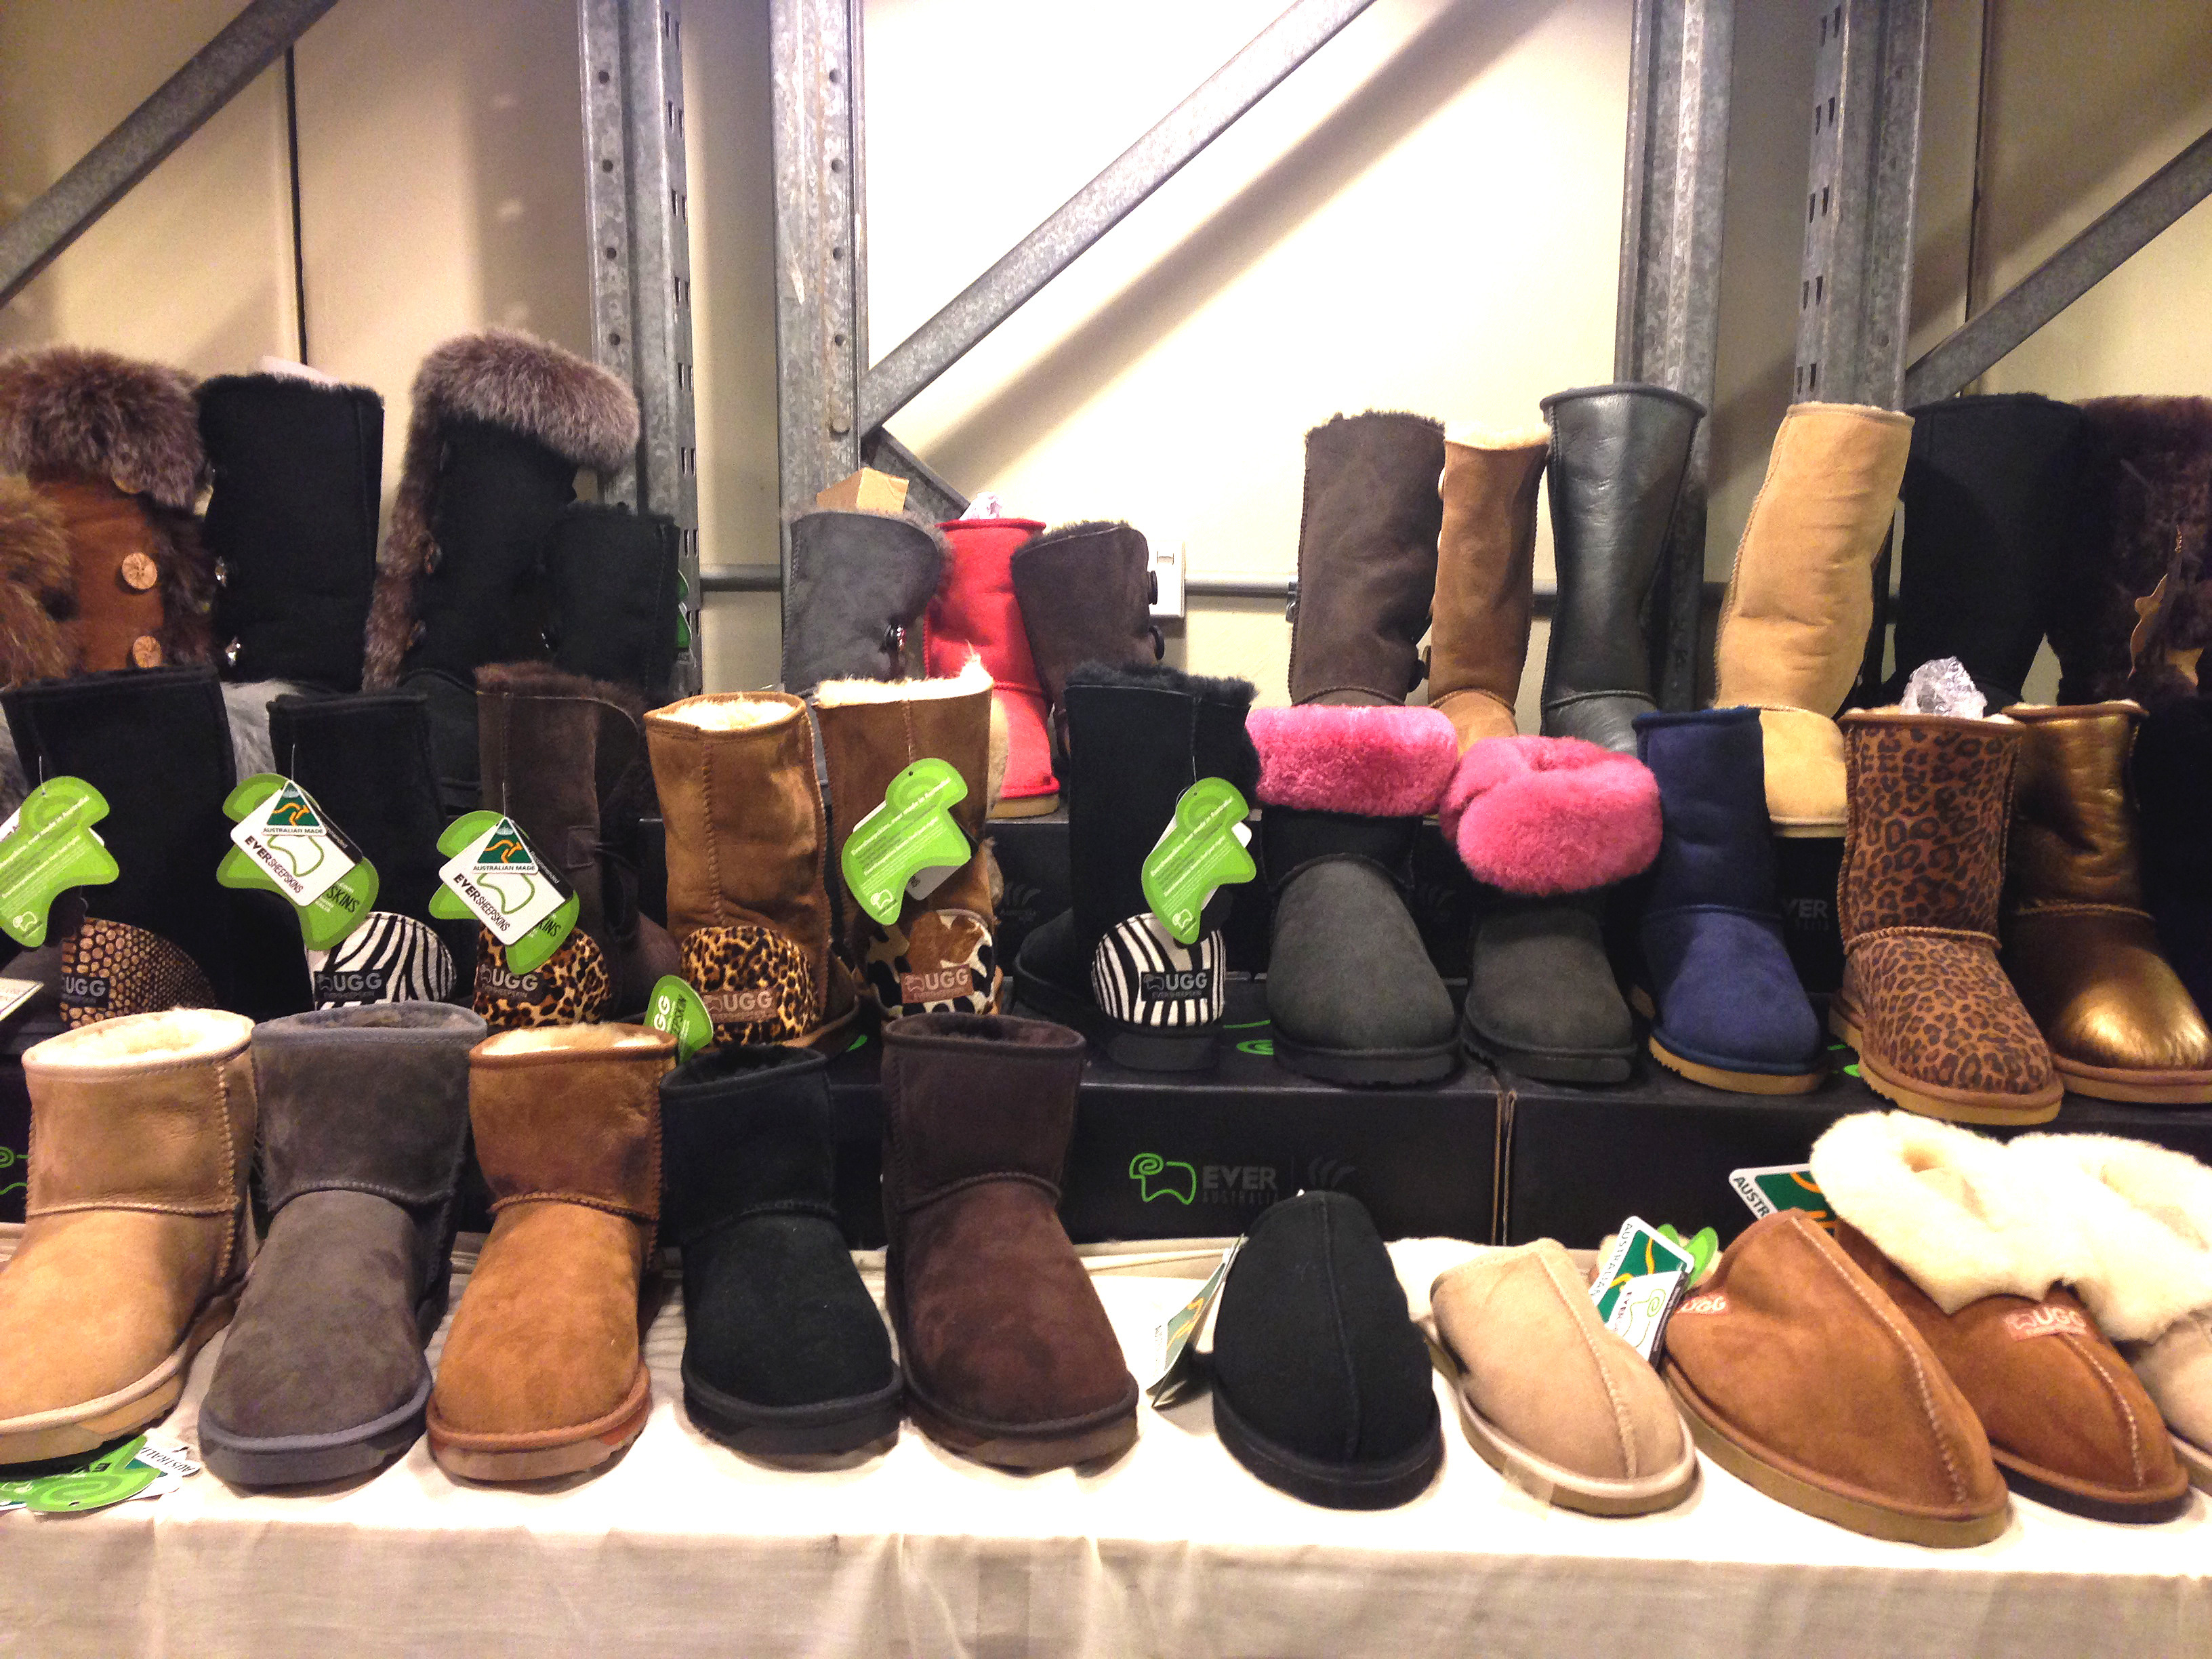 The UGG Boots Factory Outlet is located at 44 Carlingford St, Regents Park, NSW 2143 and is open from 9:30am to 5:30pm Monday to Saturday.